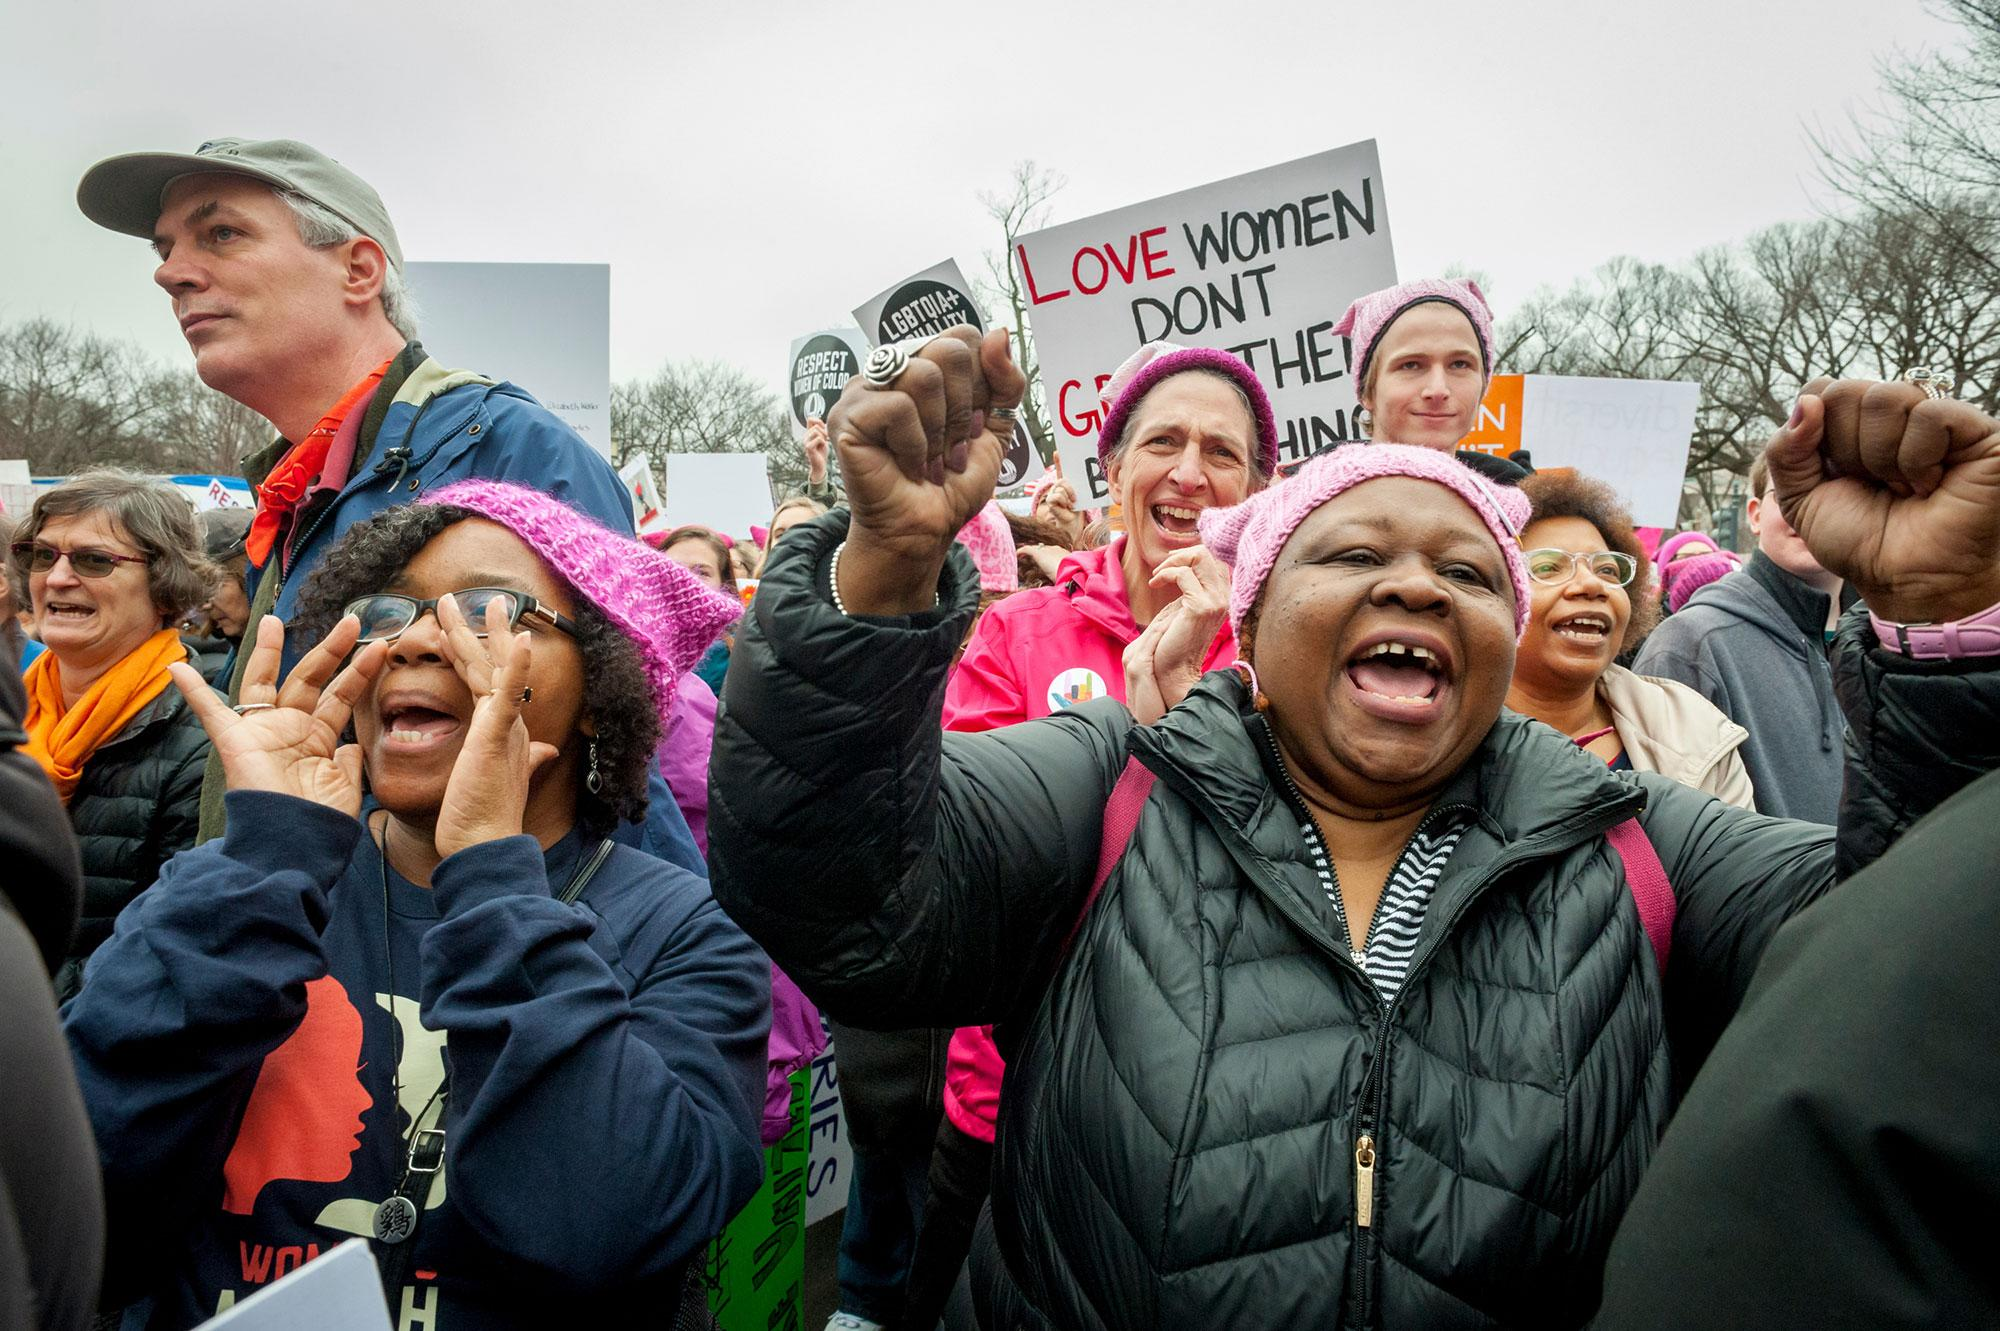 <p>Barbara Cooper and Cynthia Butler, VA., attended the march. Thousands of demonstrators gather in the Nation's Capital for the Women's March on Washington to protest the policies of President Donald Trump. January 21, 2017. (Photo: Mary F. Calvert for Yahoo News) </p>